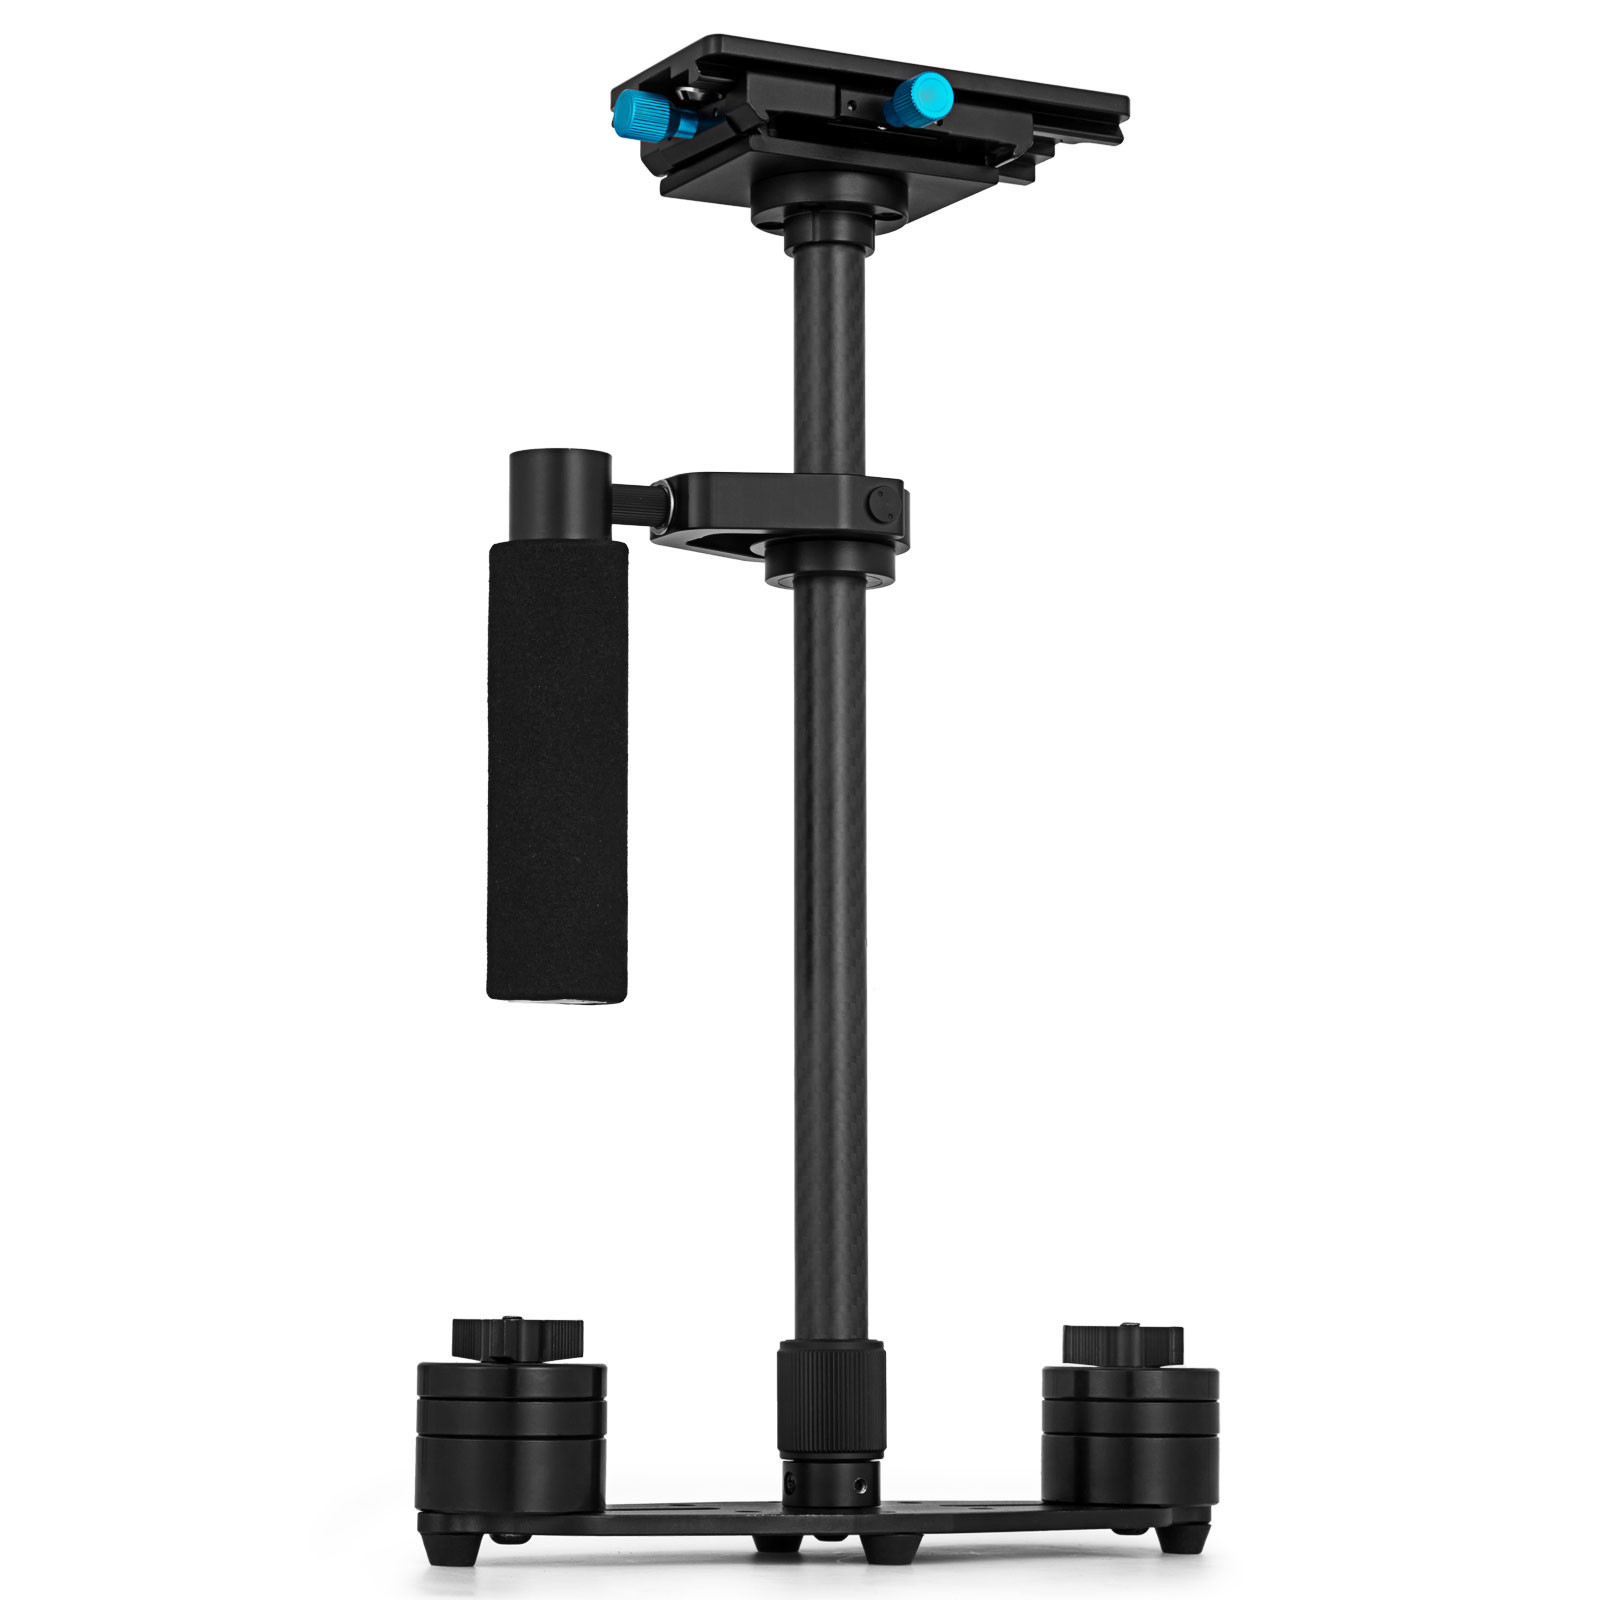 S60T-S60N-Handheld-Steady-Stabilizer-360-For-DSLR-Canon-Camera thumbnail 30